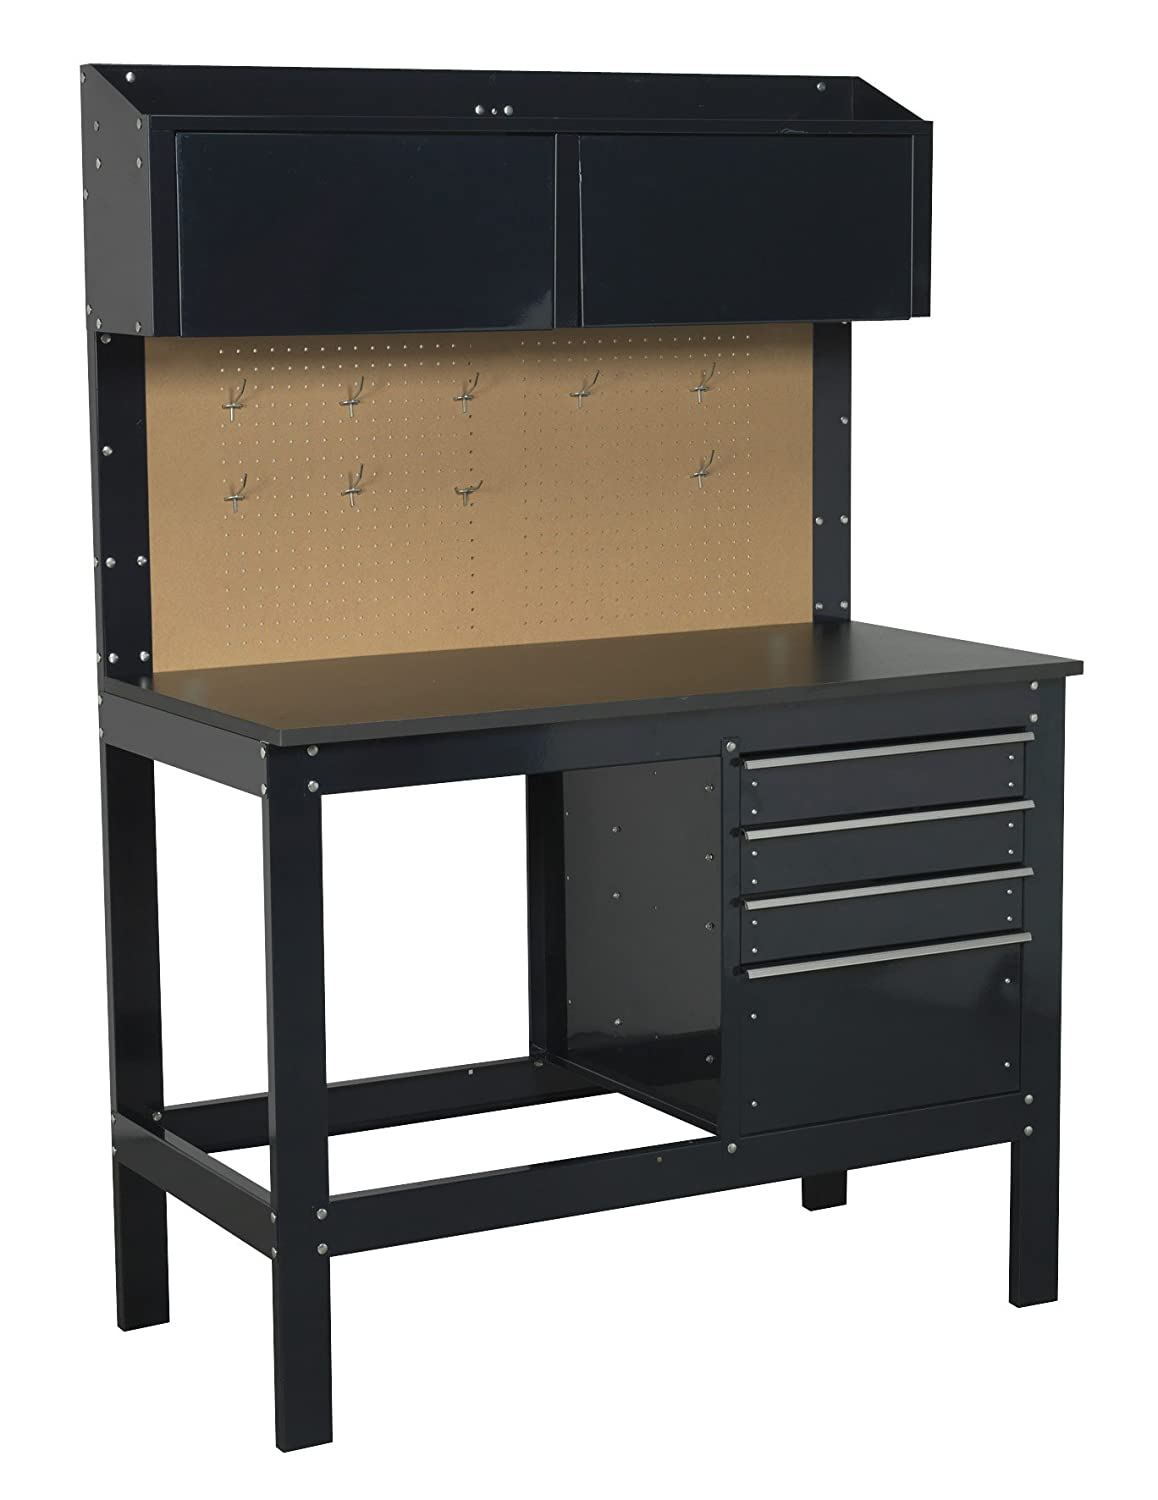 workbenches workbench grainger ideas for drawers supply metal industrial home cool with wooden storage